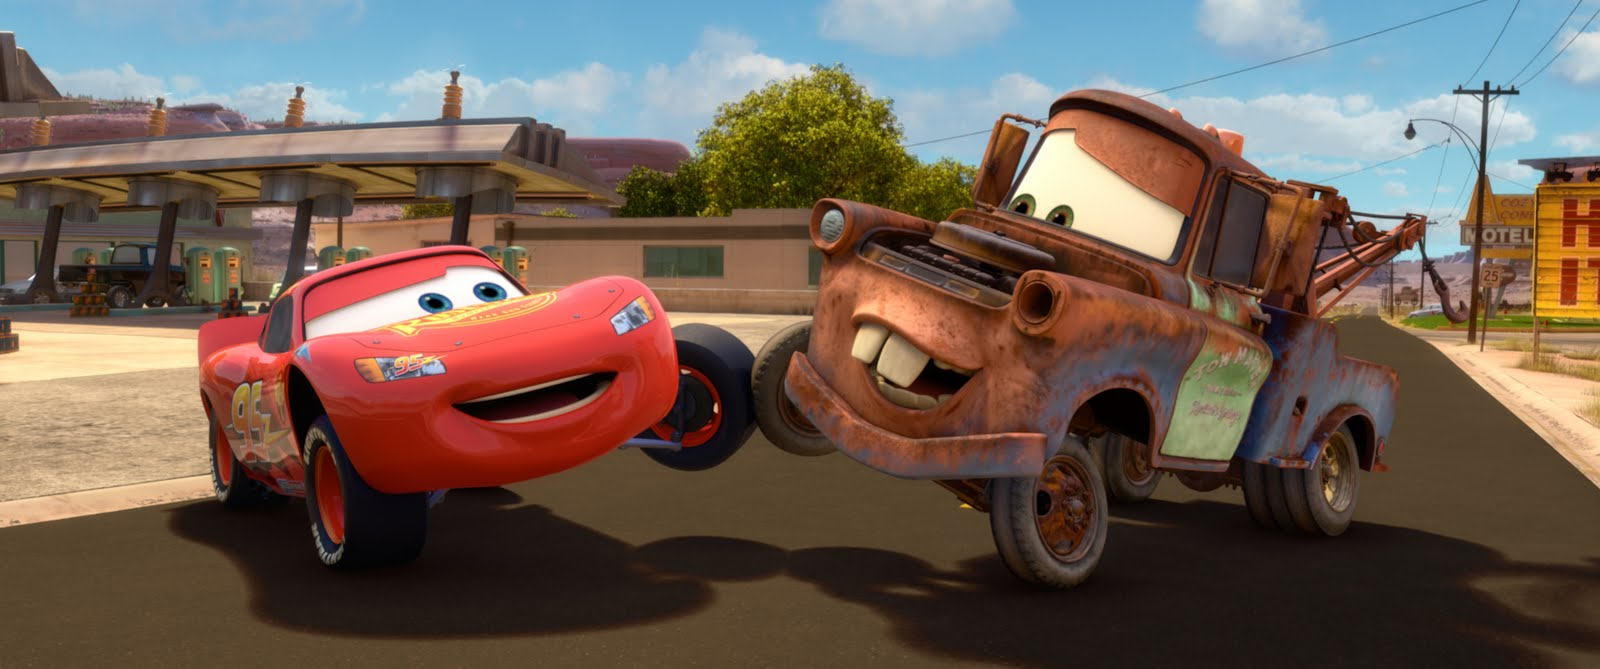 tow truck mater takes on the world in cars 2 blogger sumedang. Black Bedroom Furniture Sets. Home Design Ideas